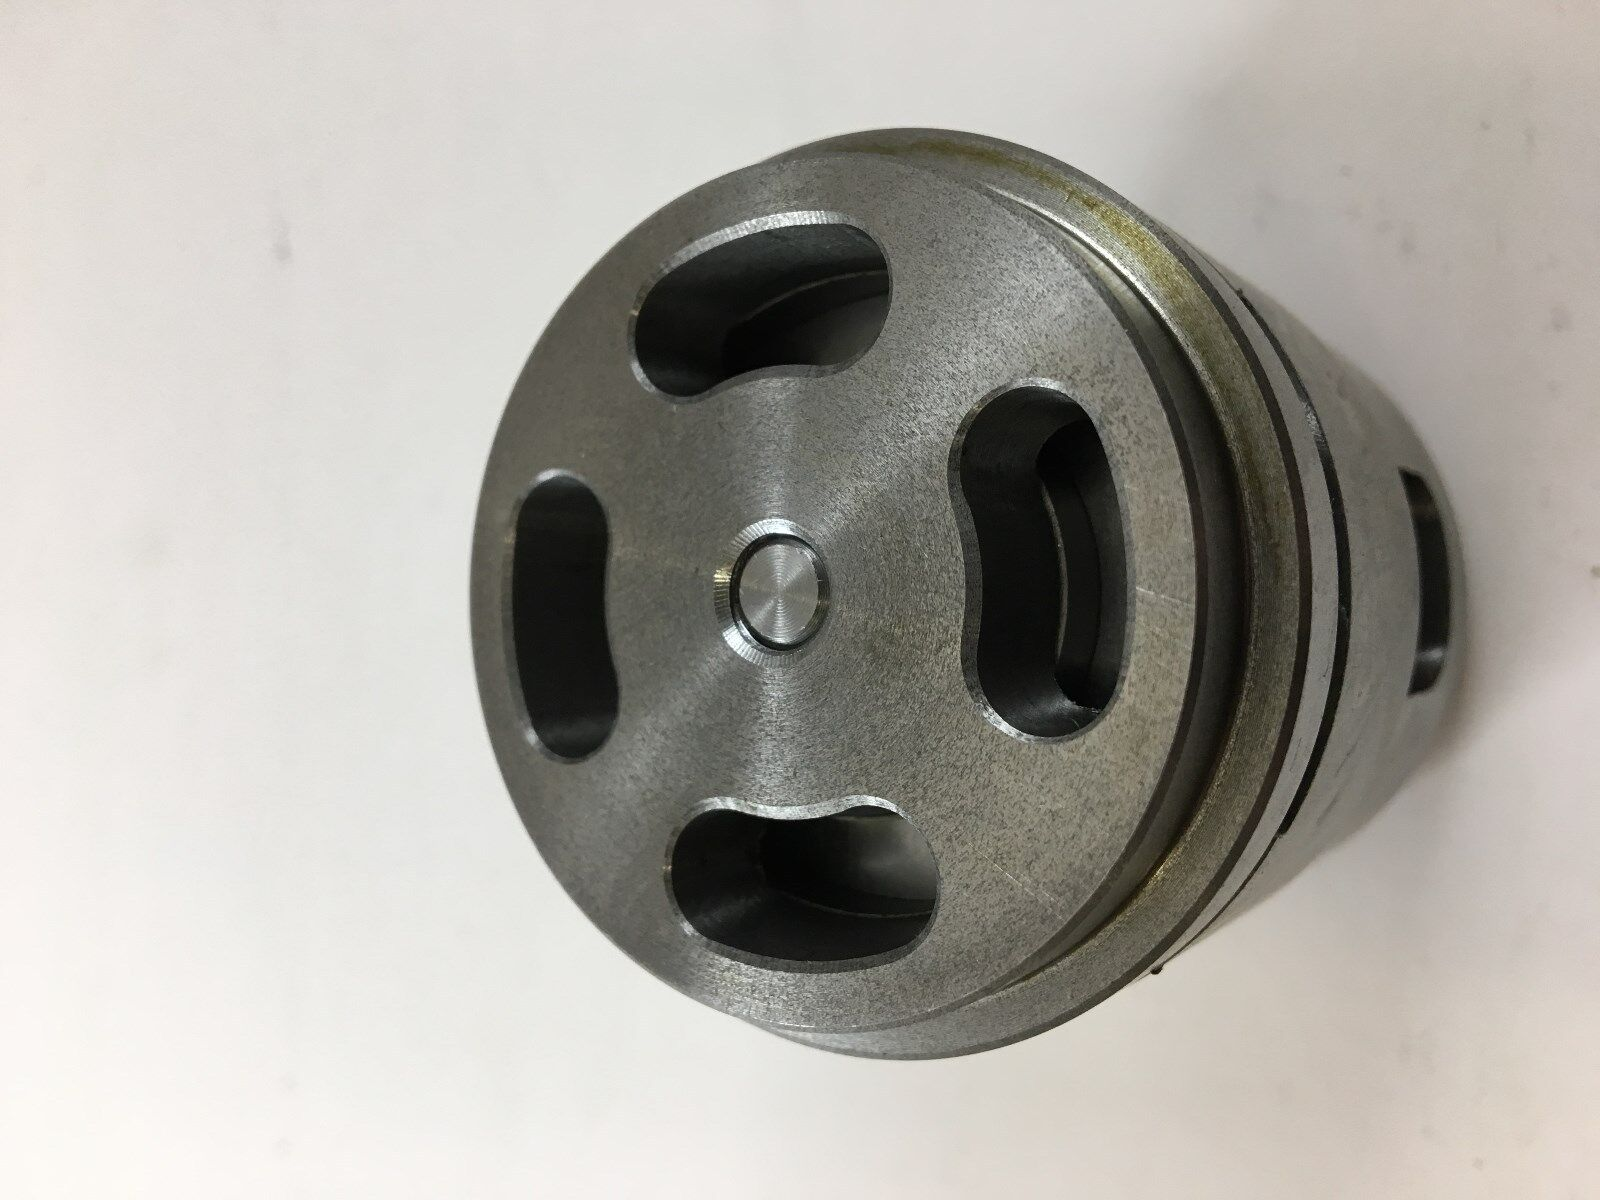 7271X Quincy Valve Assembly With Seat Gasket Replacement